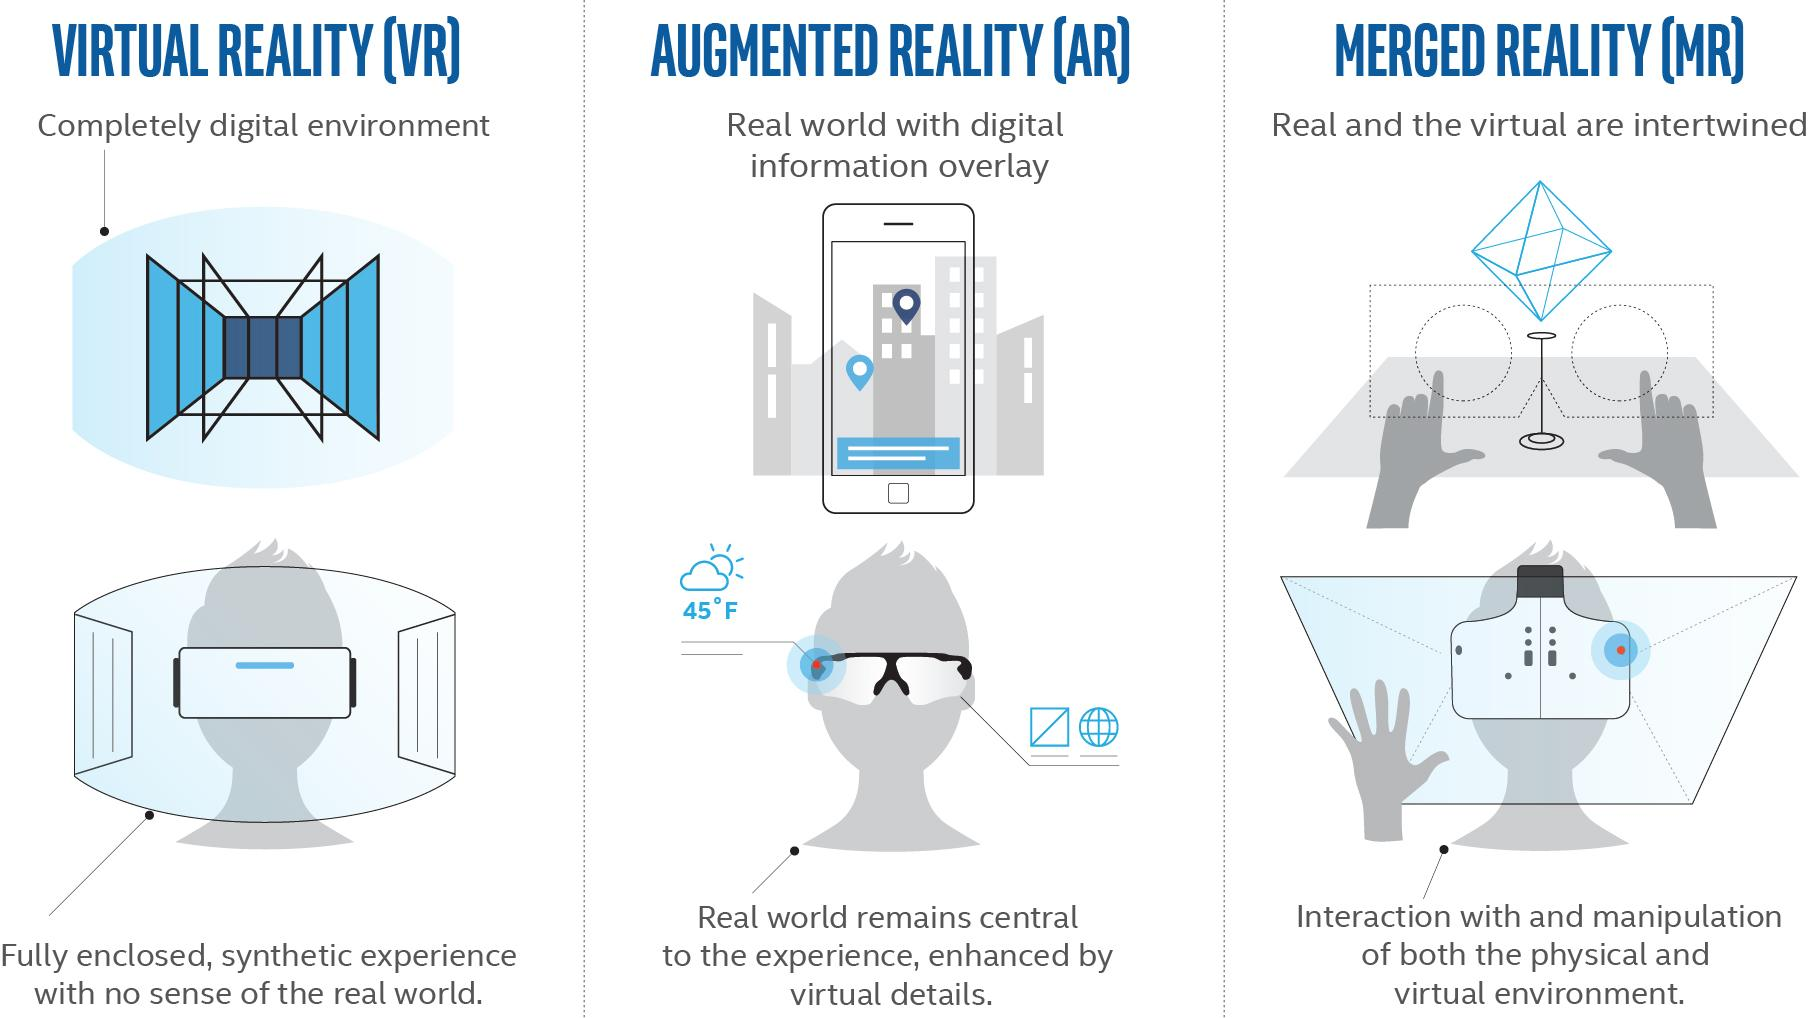 Reality roadmap according to Intel, which prefers the term merged reality to mixed reality